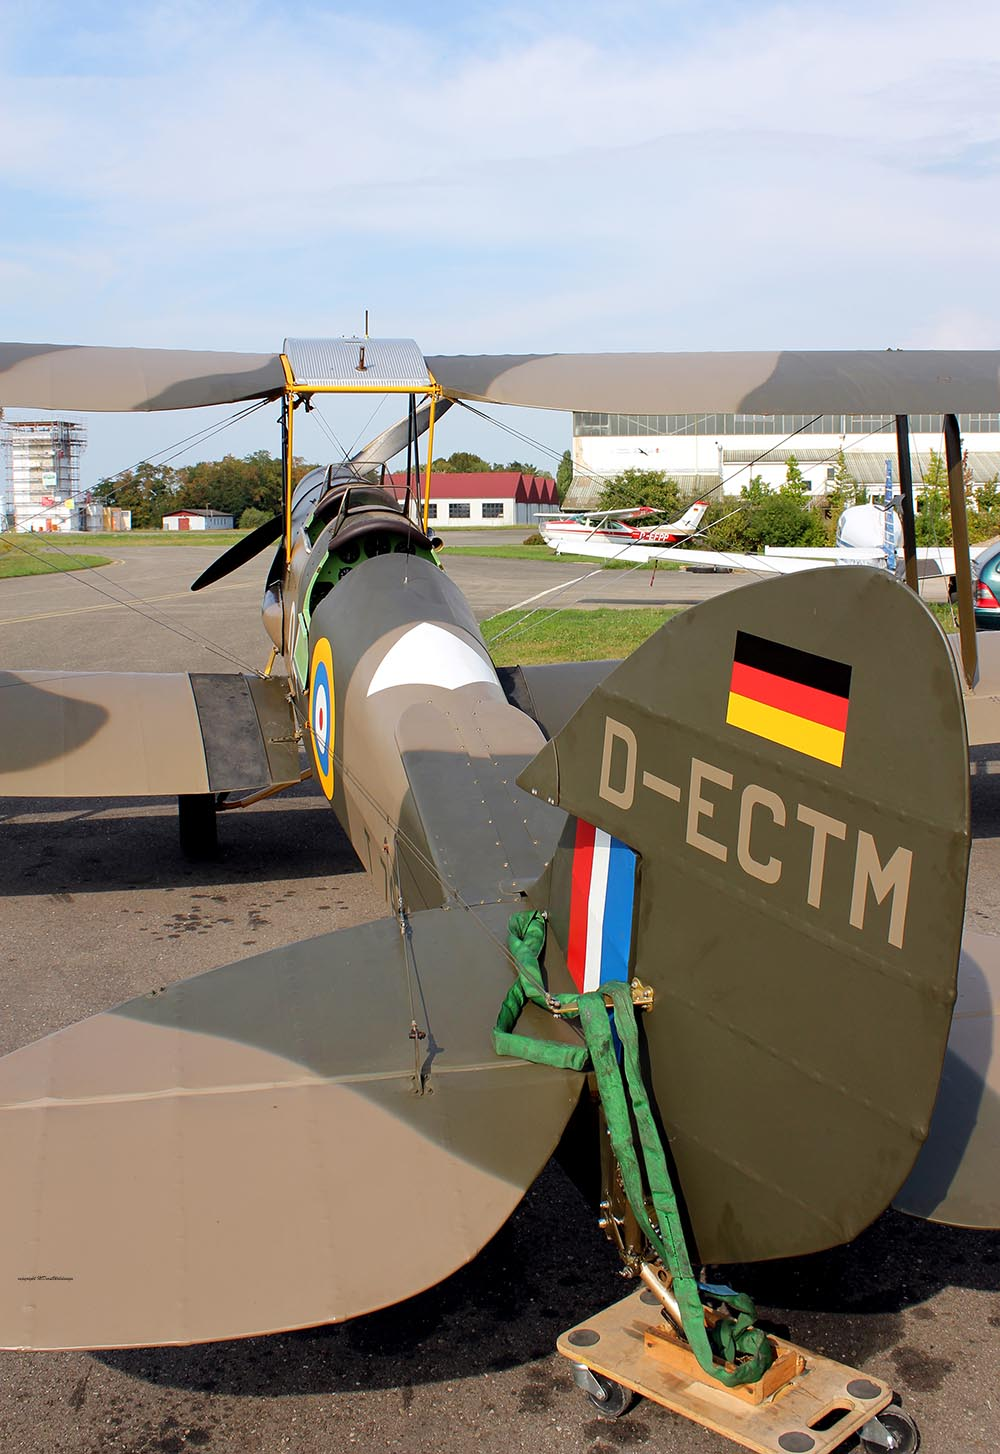 De_Havilland_TigerMoth_D-ECTM_2011-08-256.jpg